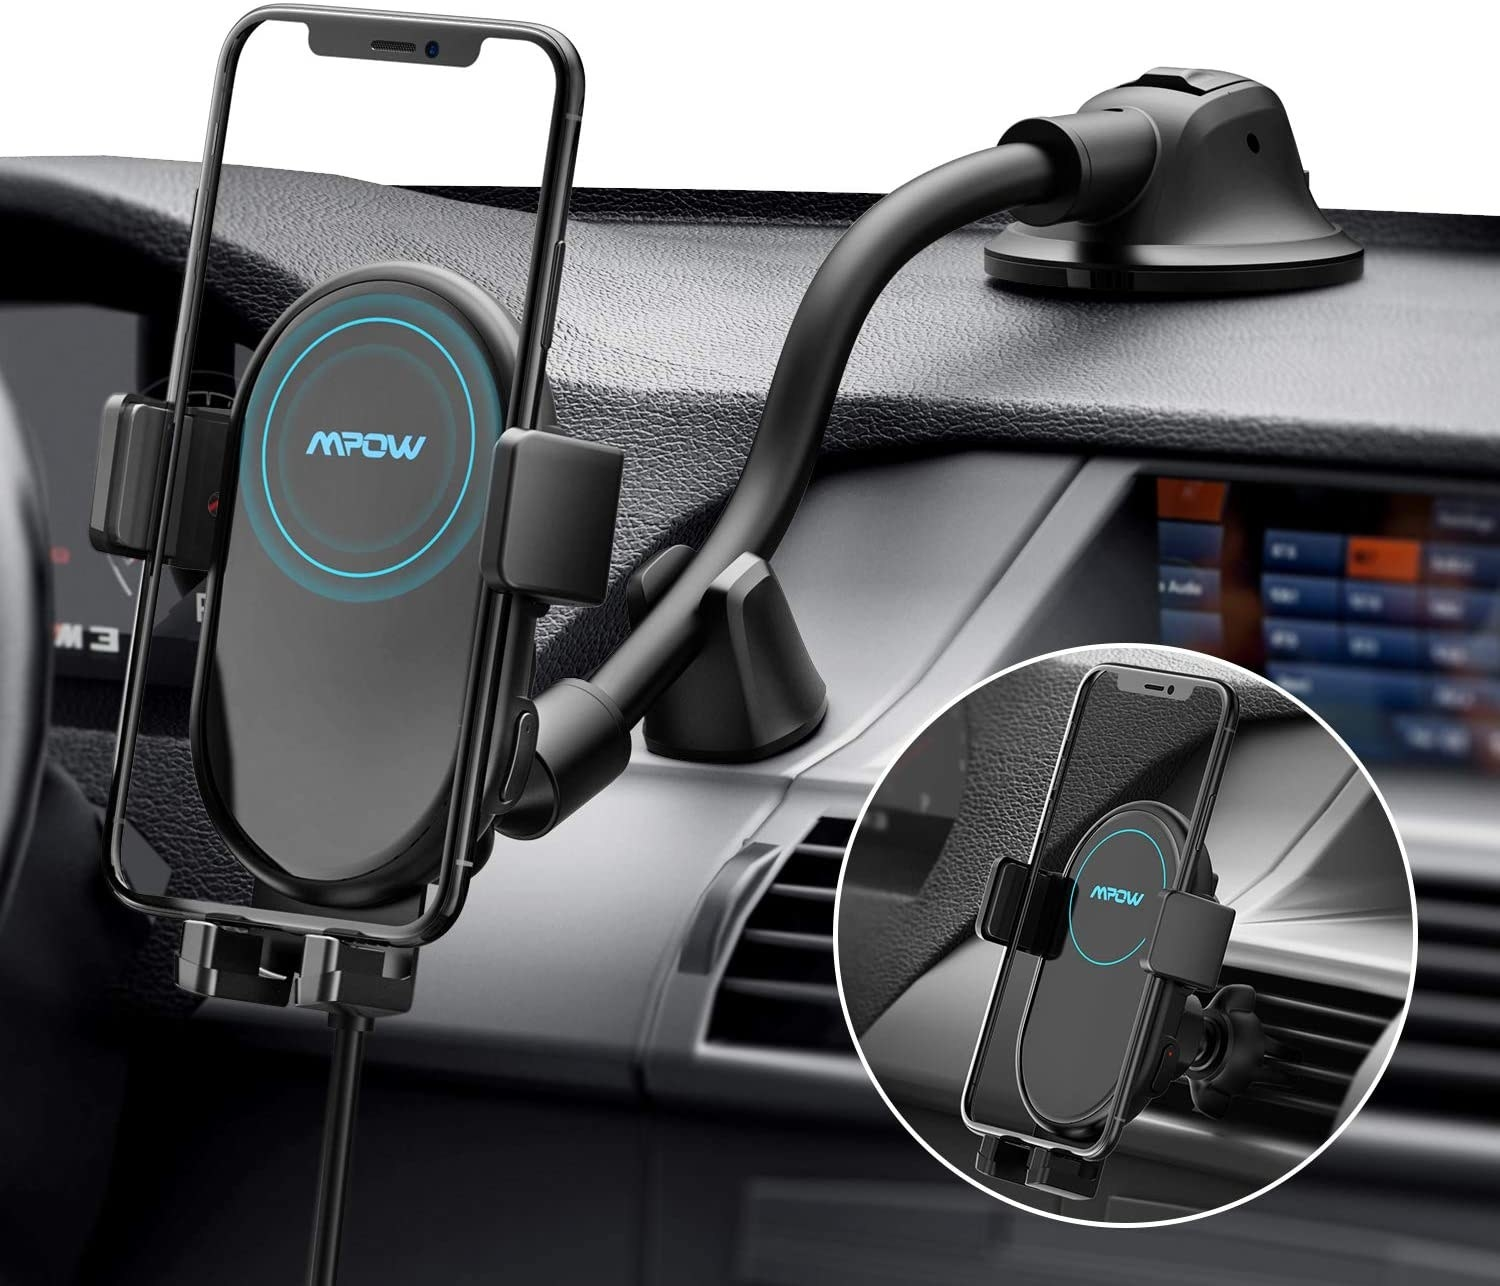 The phone charging mount on a car dash board